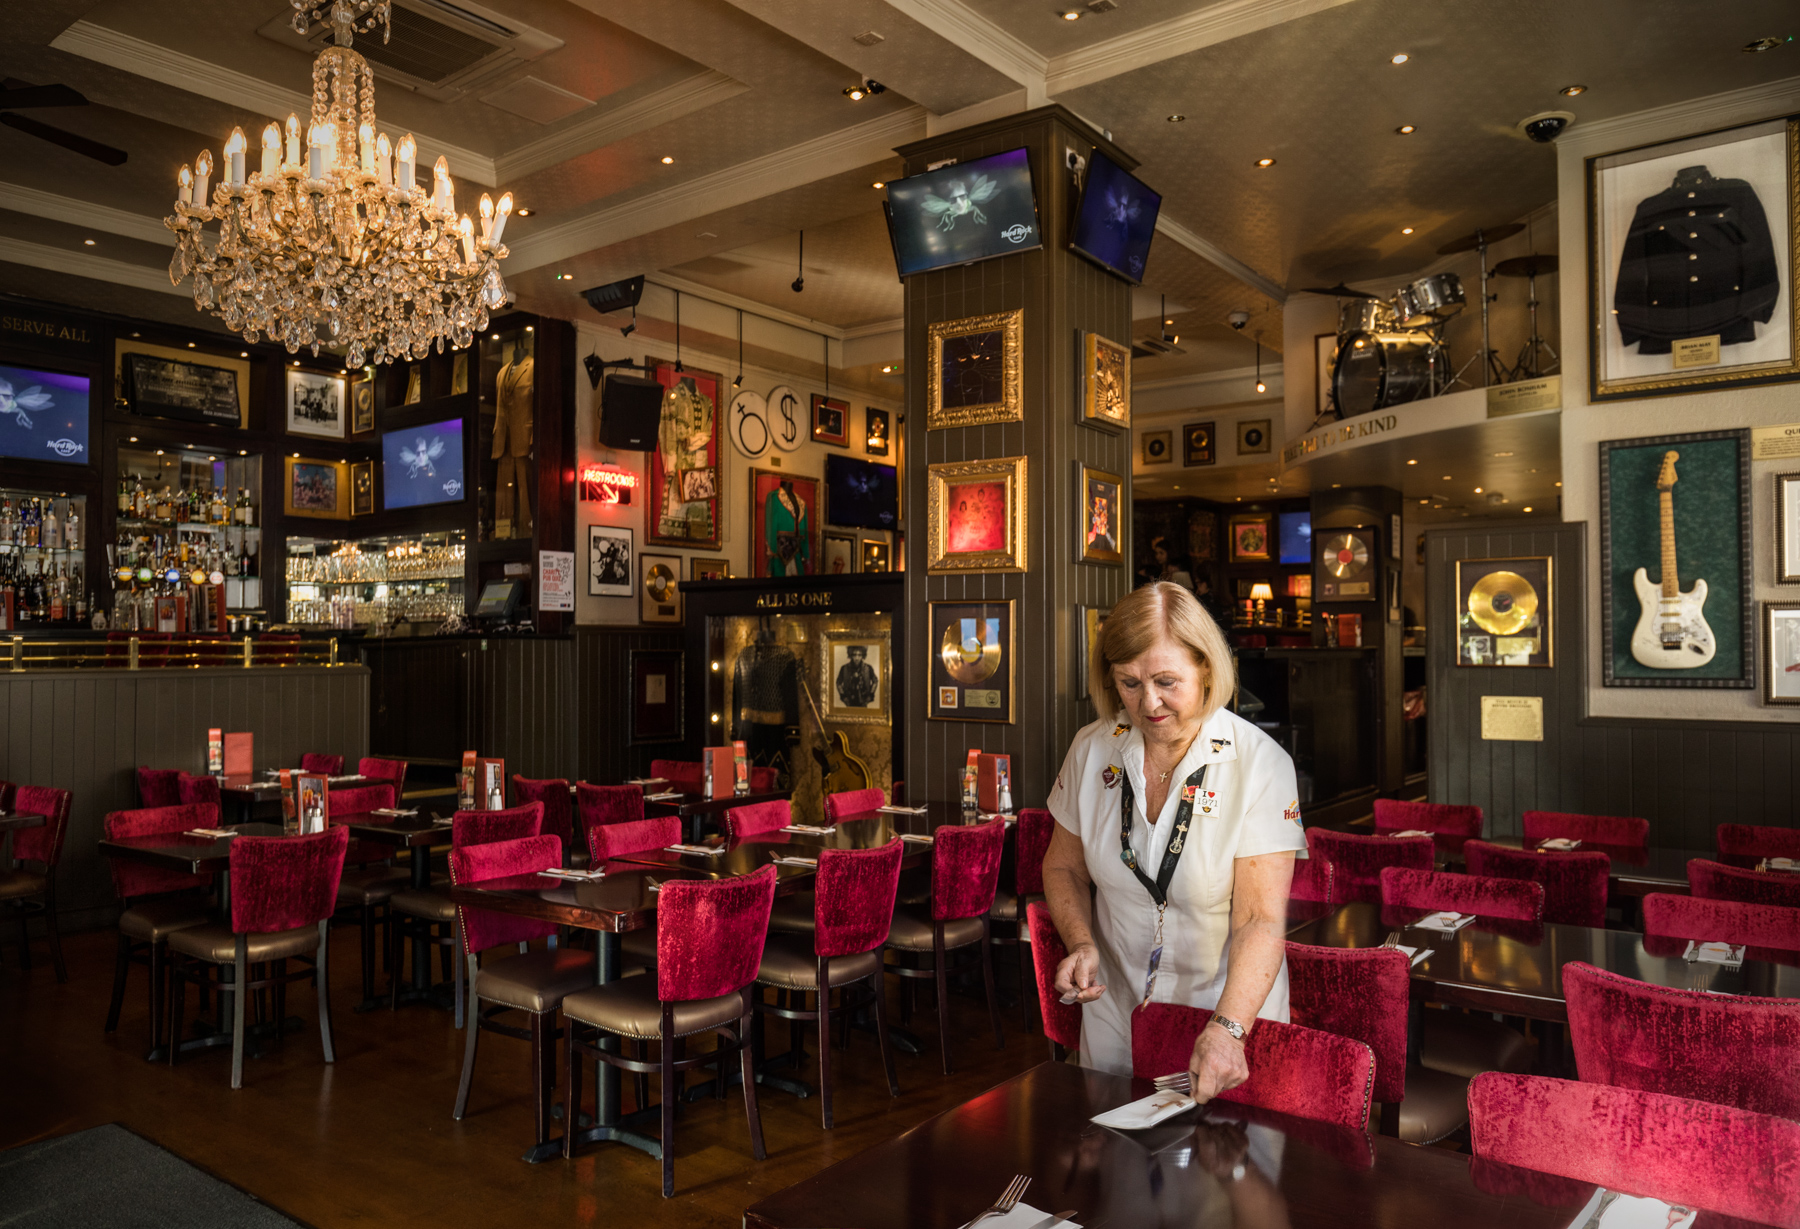 Delia was one of the first employees at the first Hard Rock Cafe restaurant in London. She's been there 47 years.